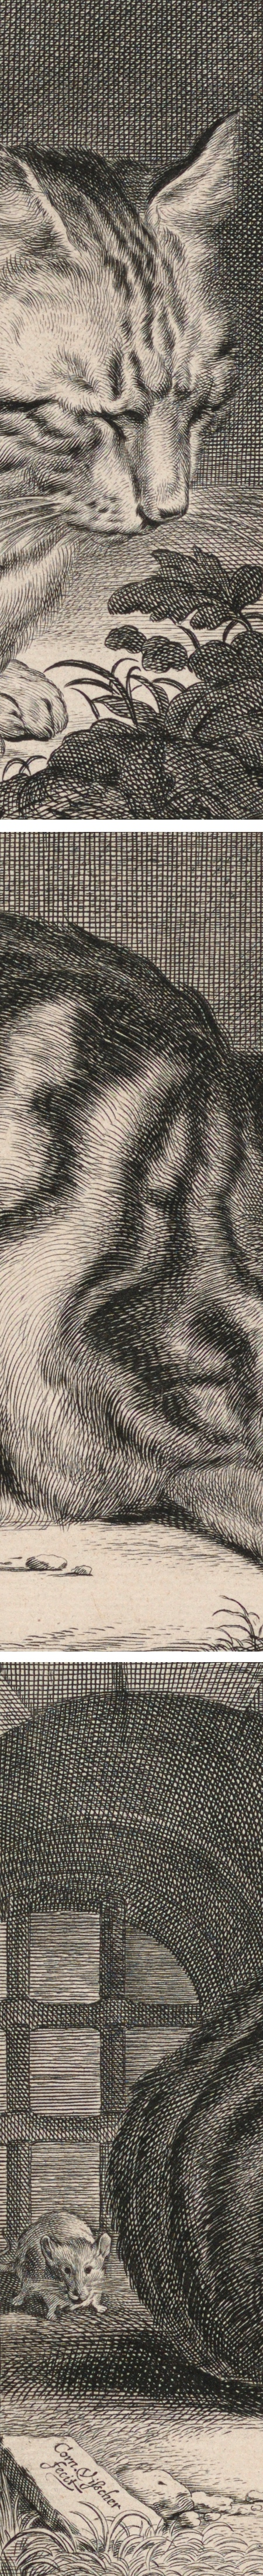 Cornelis Visscher, The Large Cat, engraving (details)